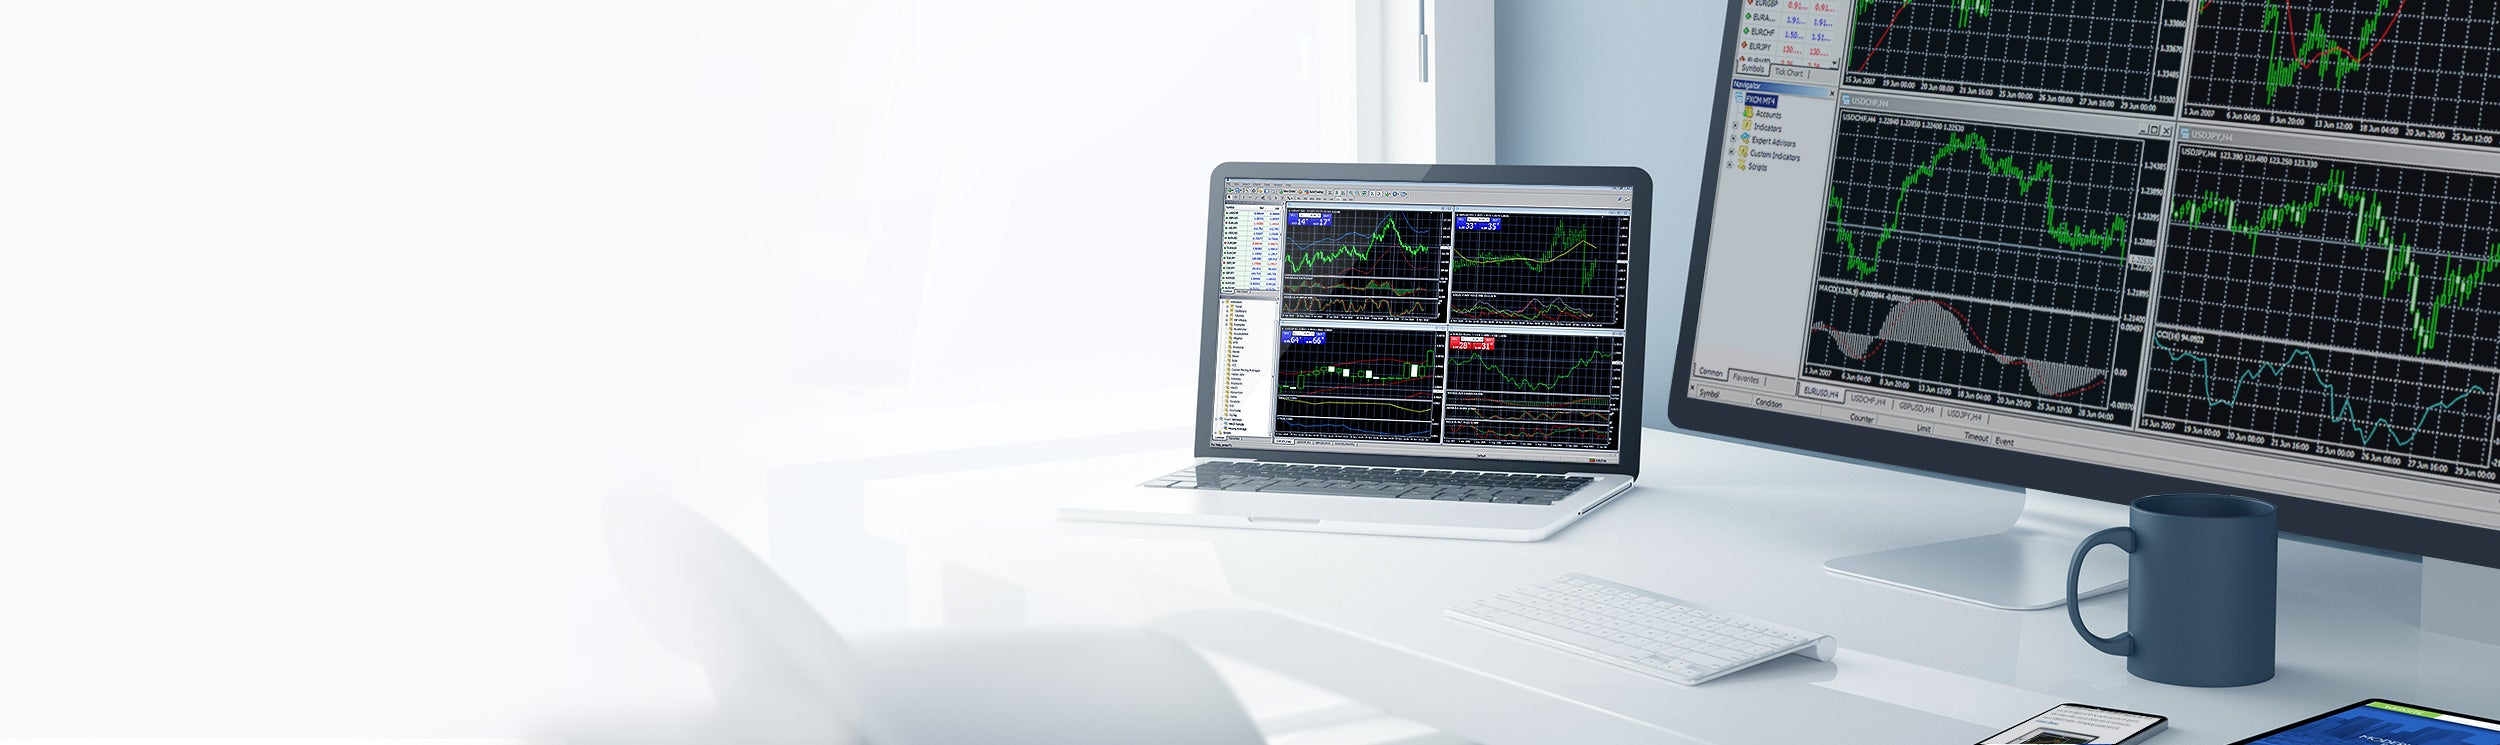 Metatrader 4 For Mac Windows Ios And Android